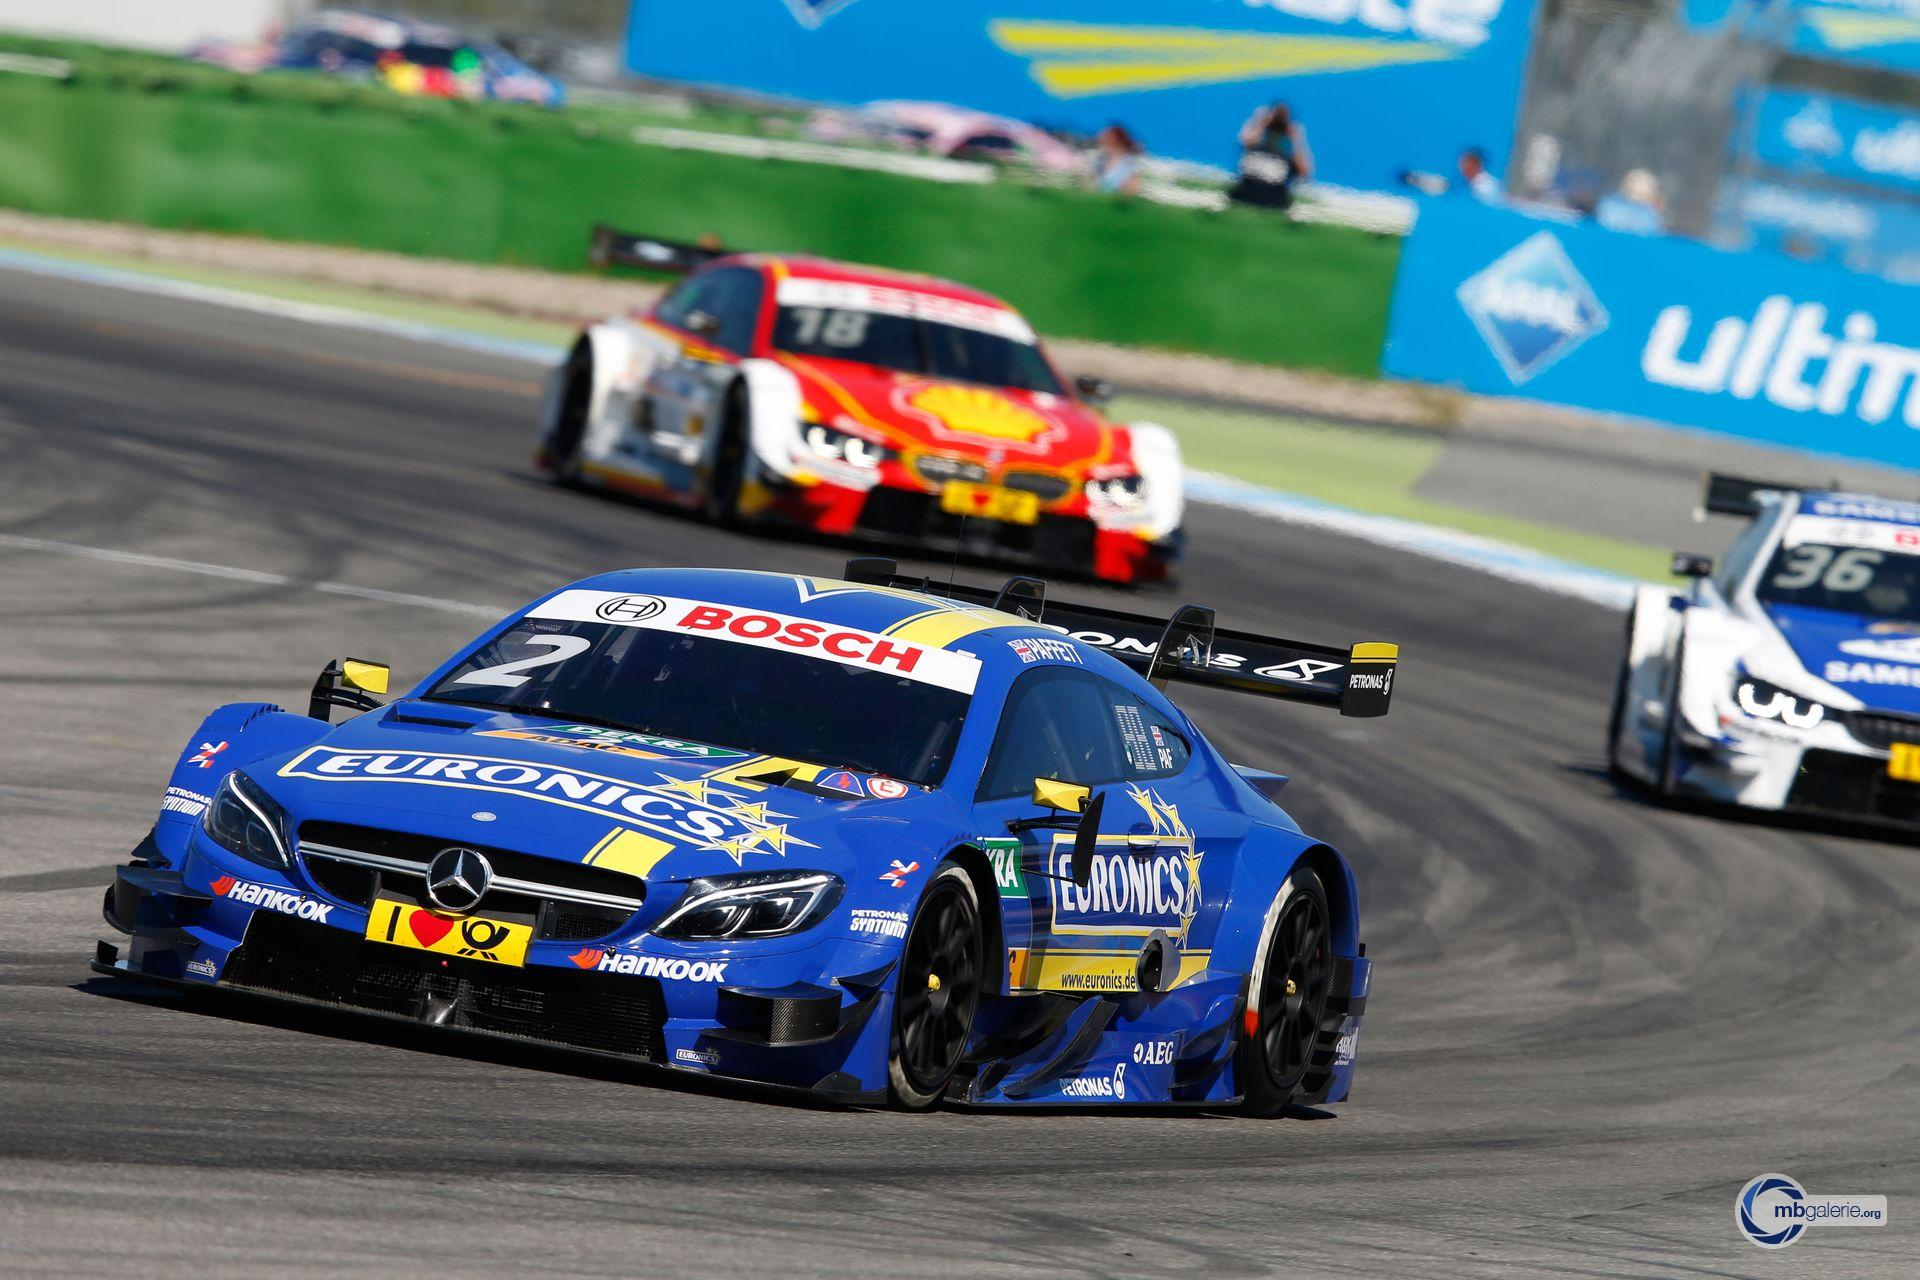 Mercedes benz motorsport dtm saison 2016 01 hockenheim for Mercedes benz motorsport